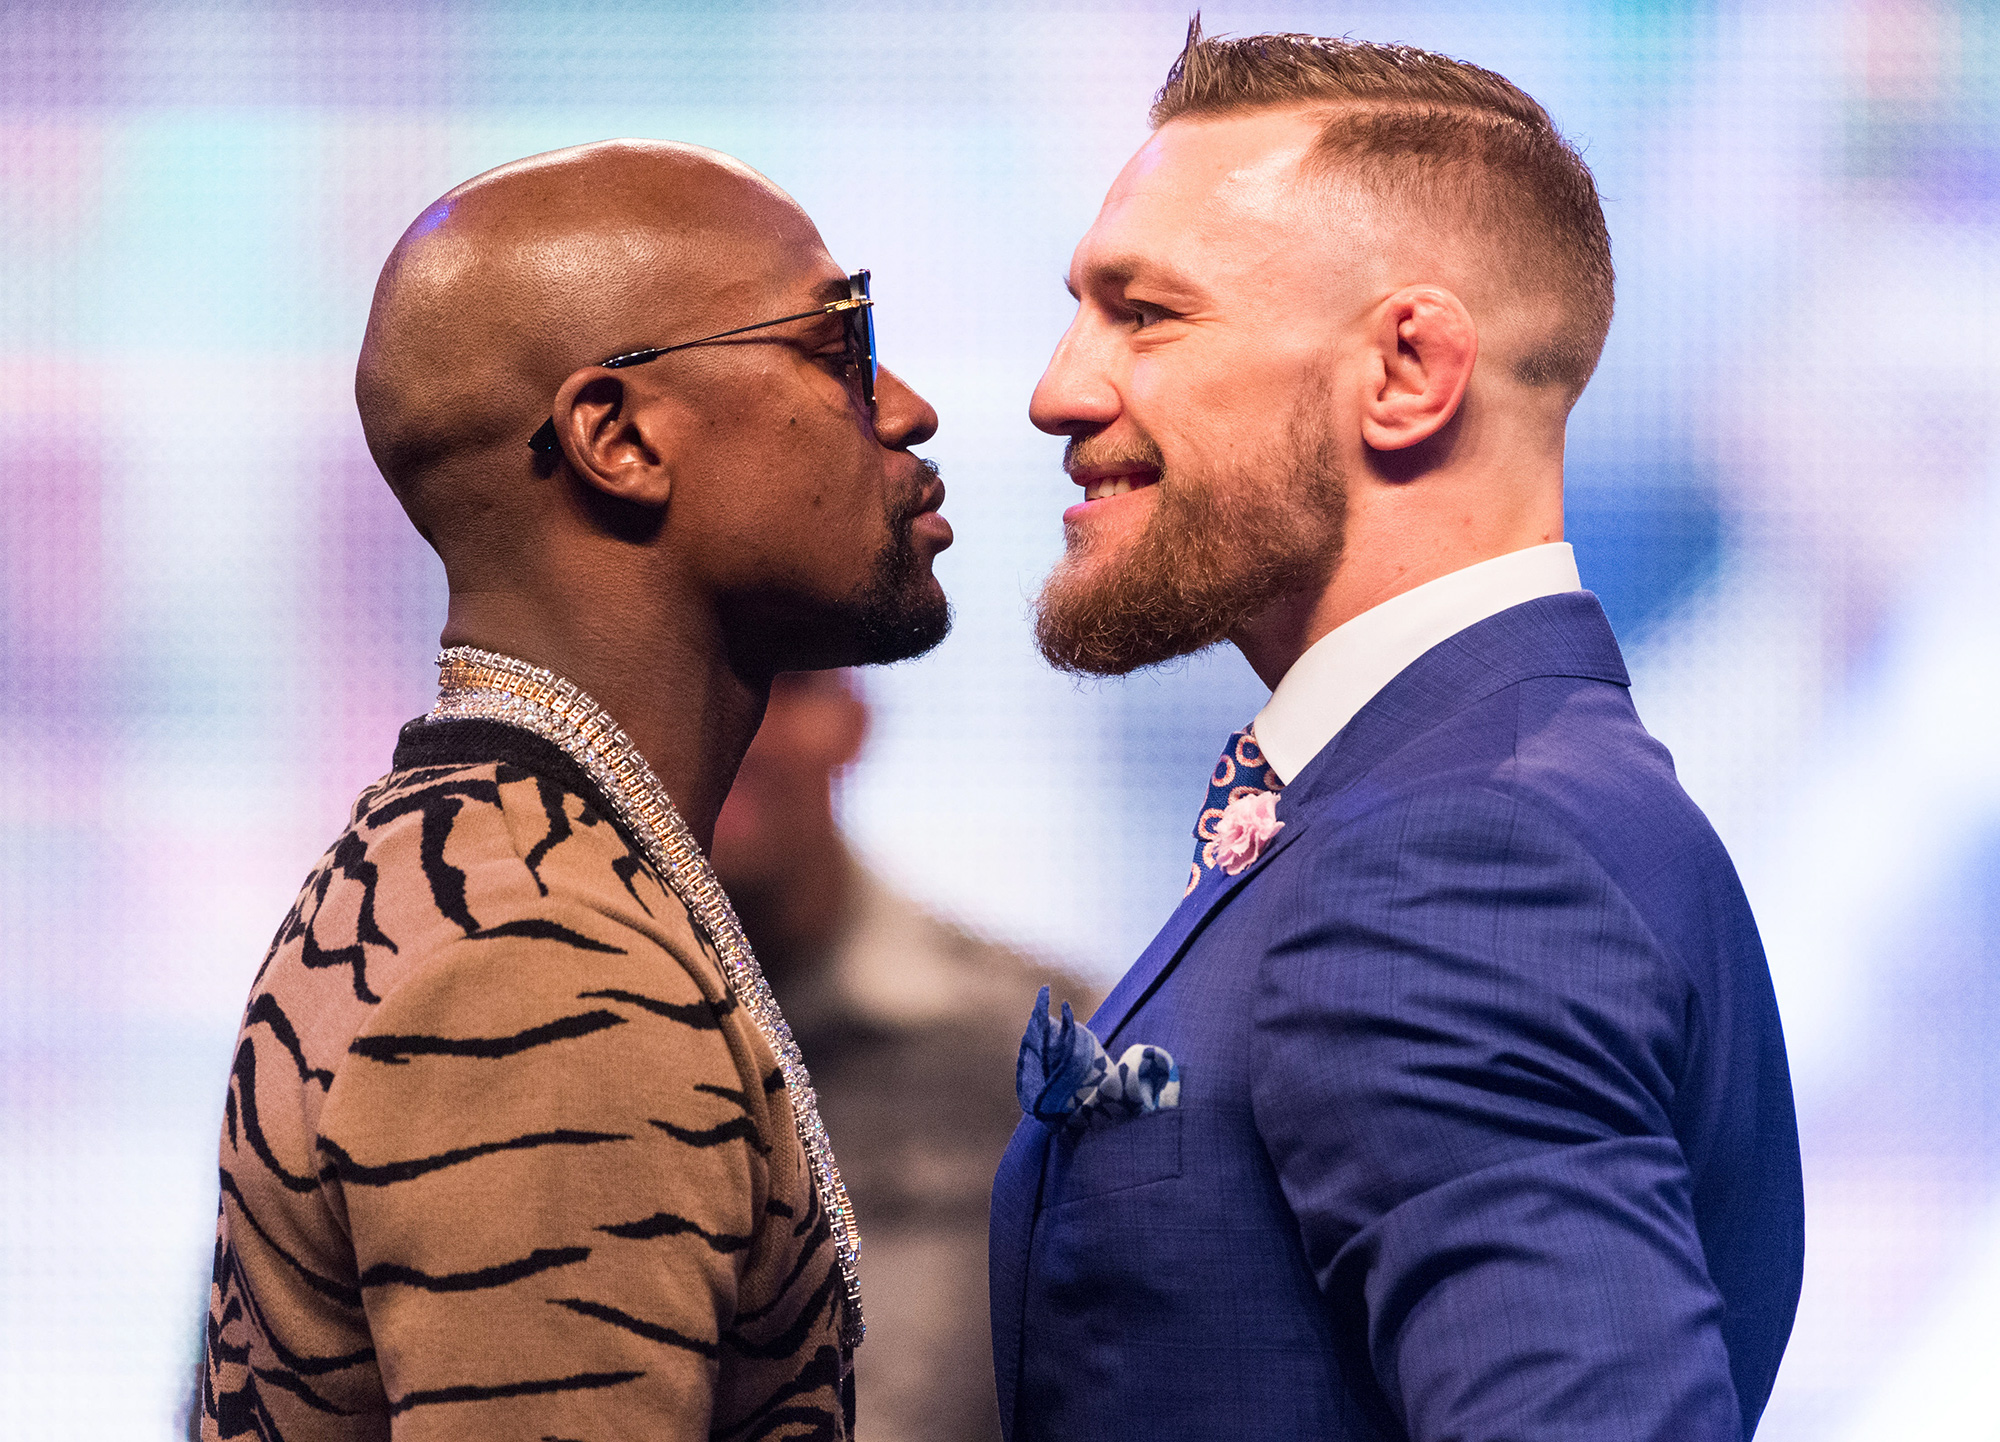 Floyd Mayweather and Conor McGregor World Tour in London.